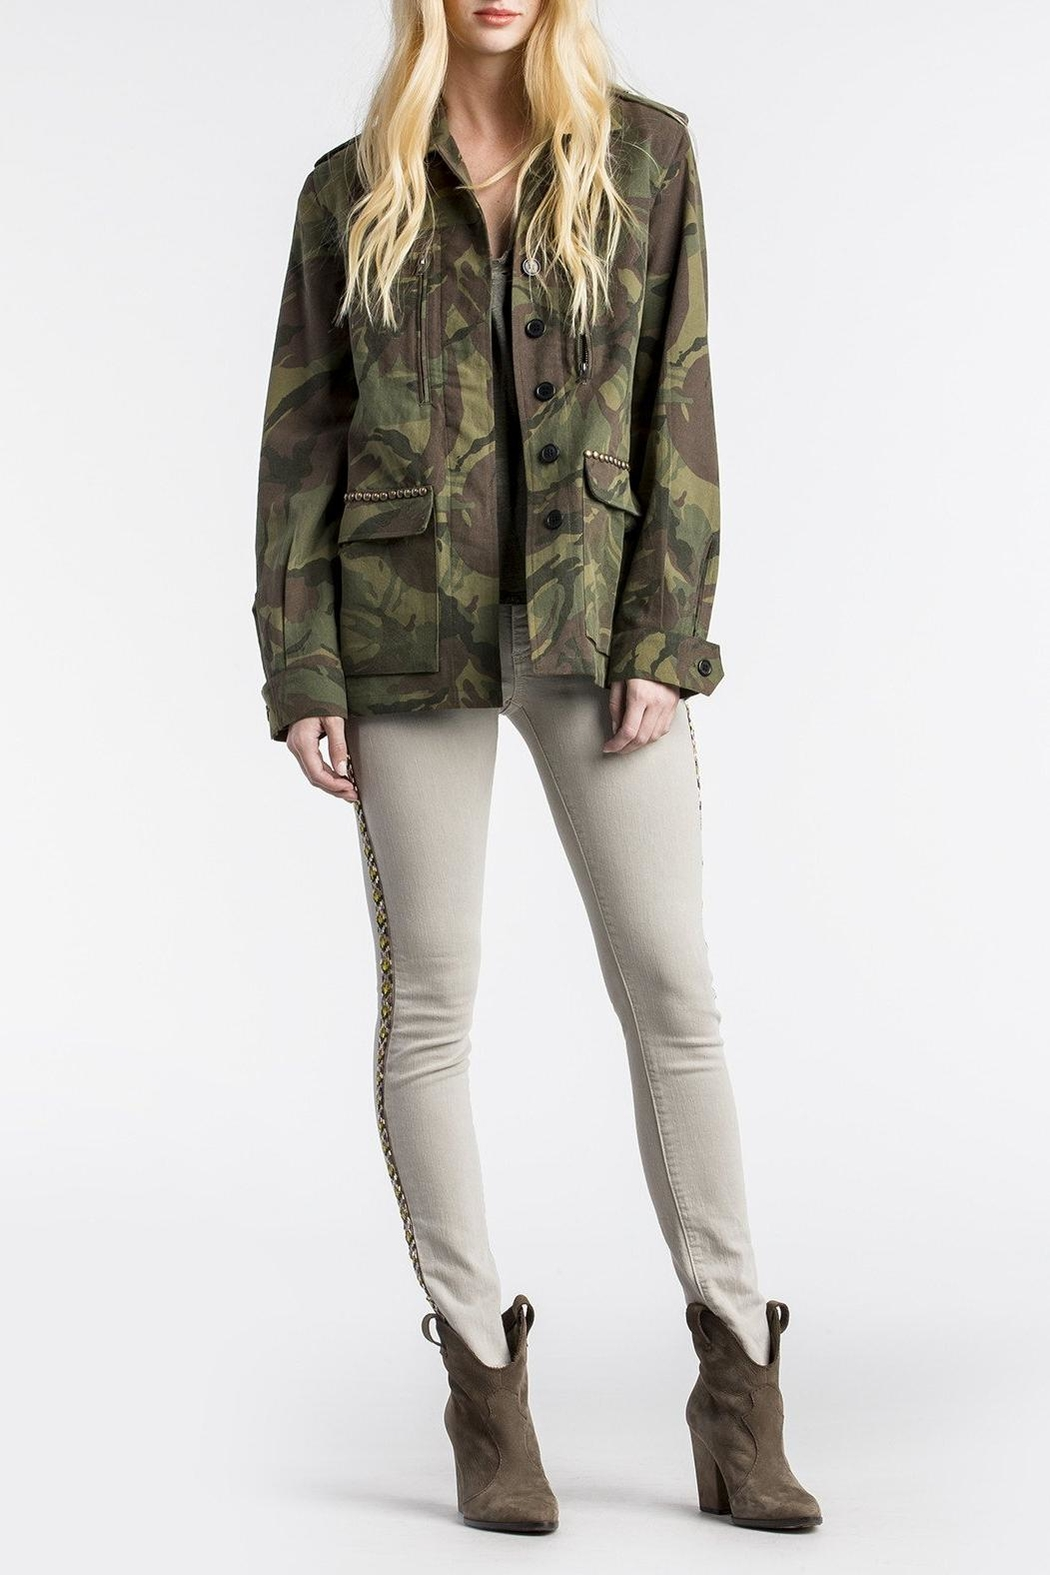 MM Vintage Floral-Embroidered Camo Military-Jacket - Front Full Image